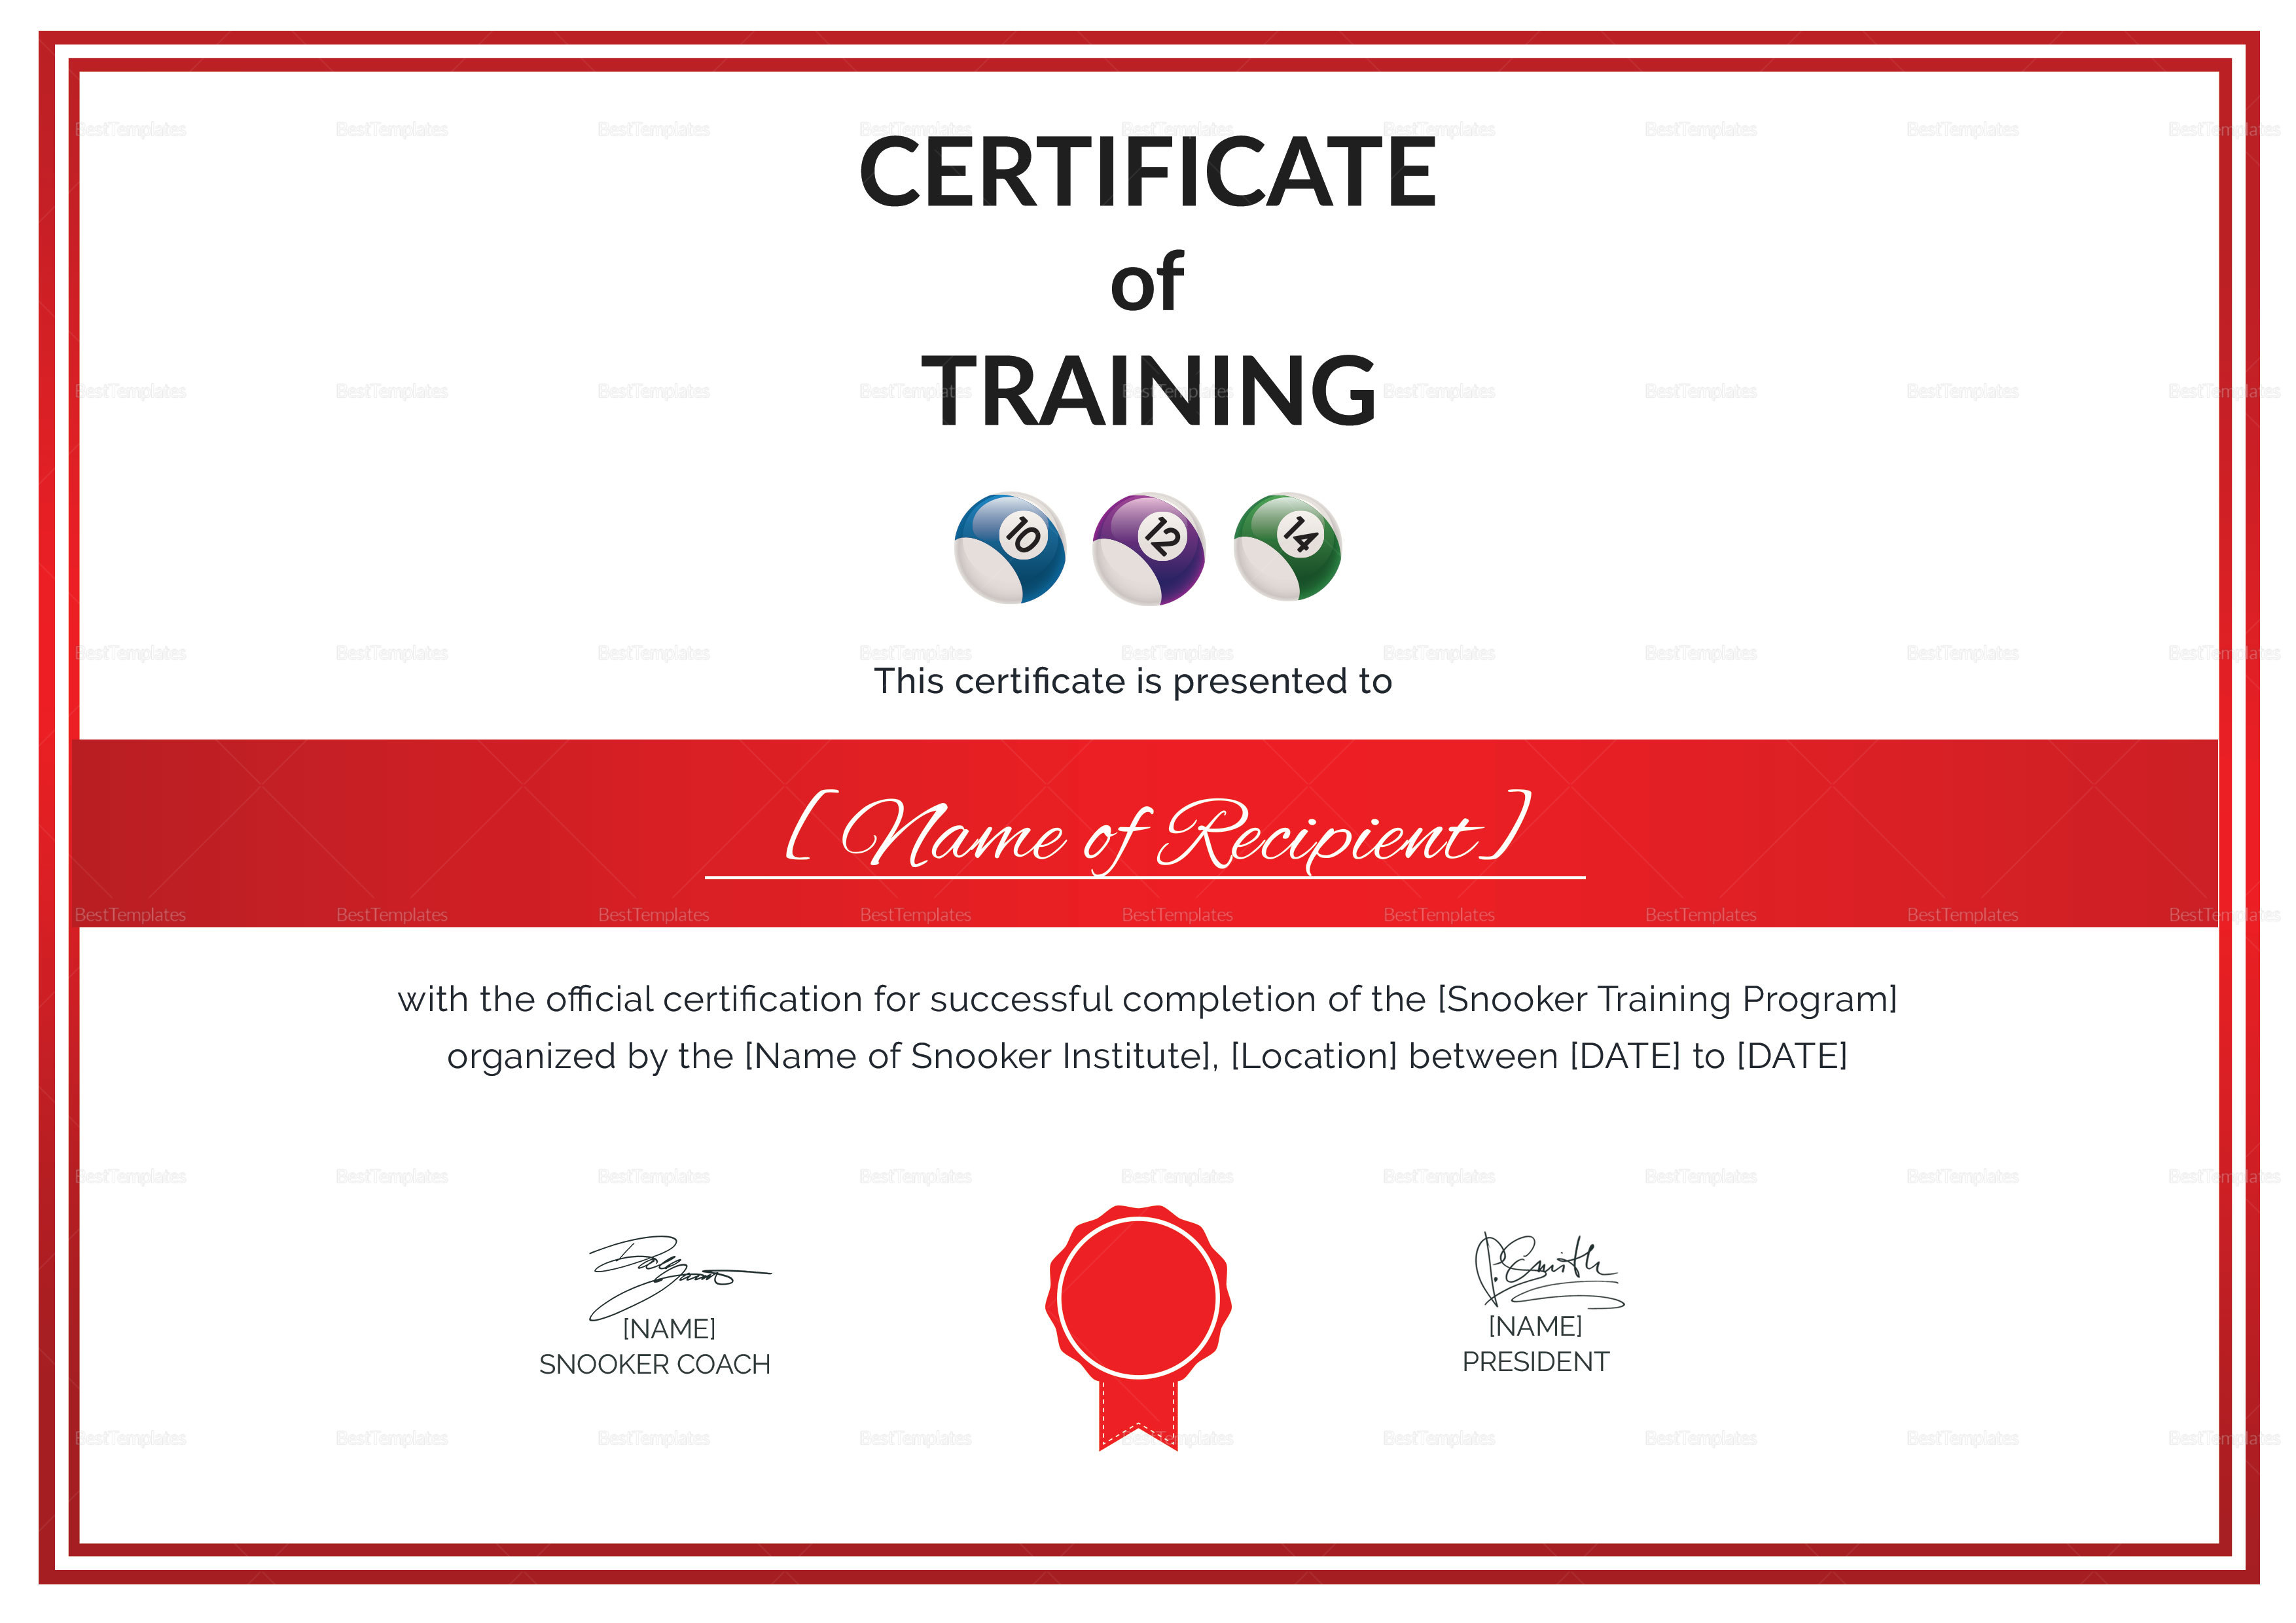 Certificate of Snooker Training